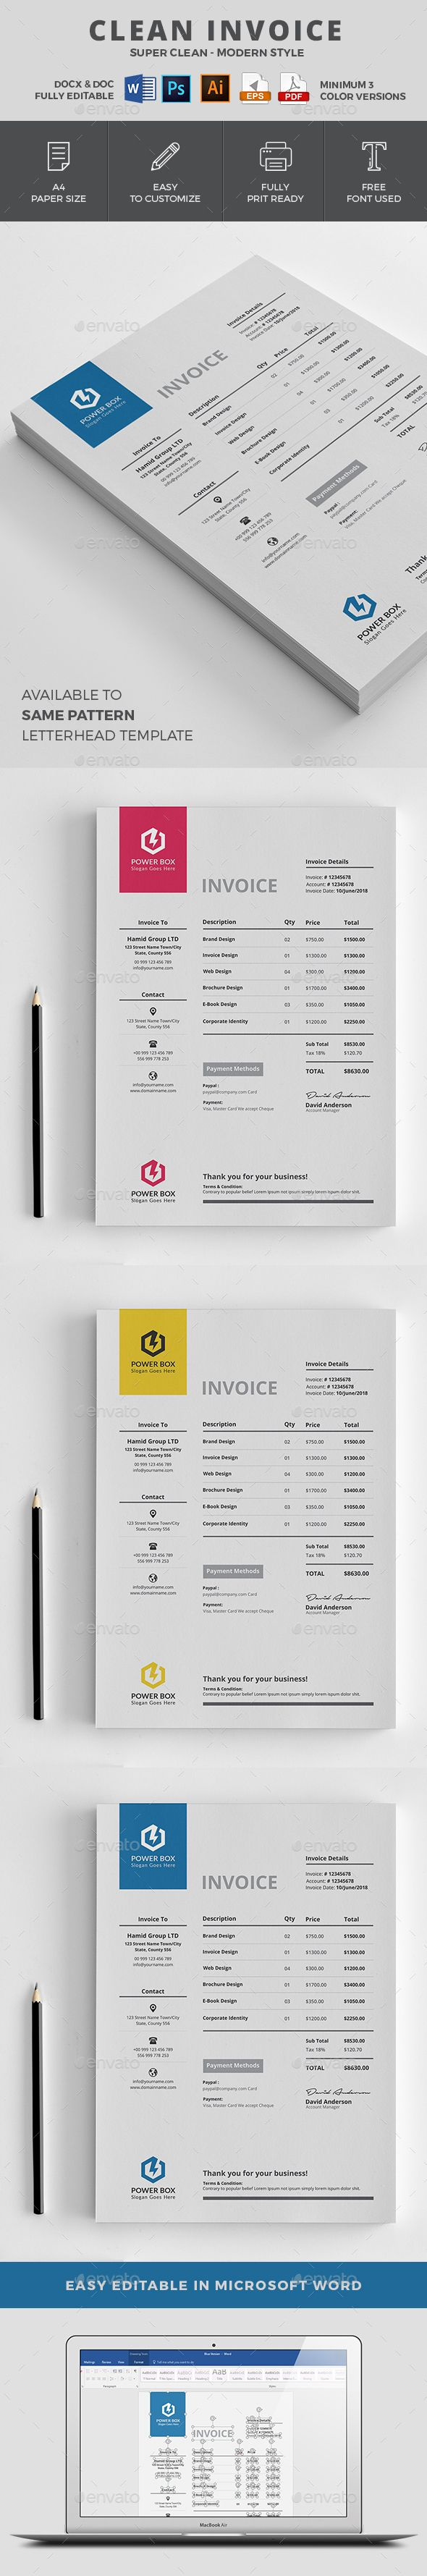 17 best ideas about invoice template on pinterest | invoice design, Invoice templates